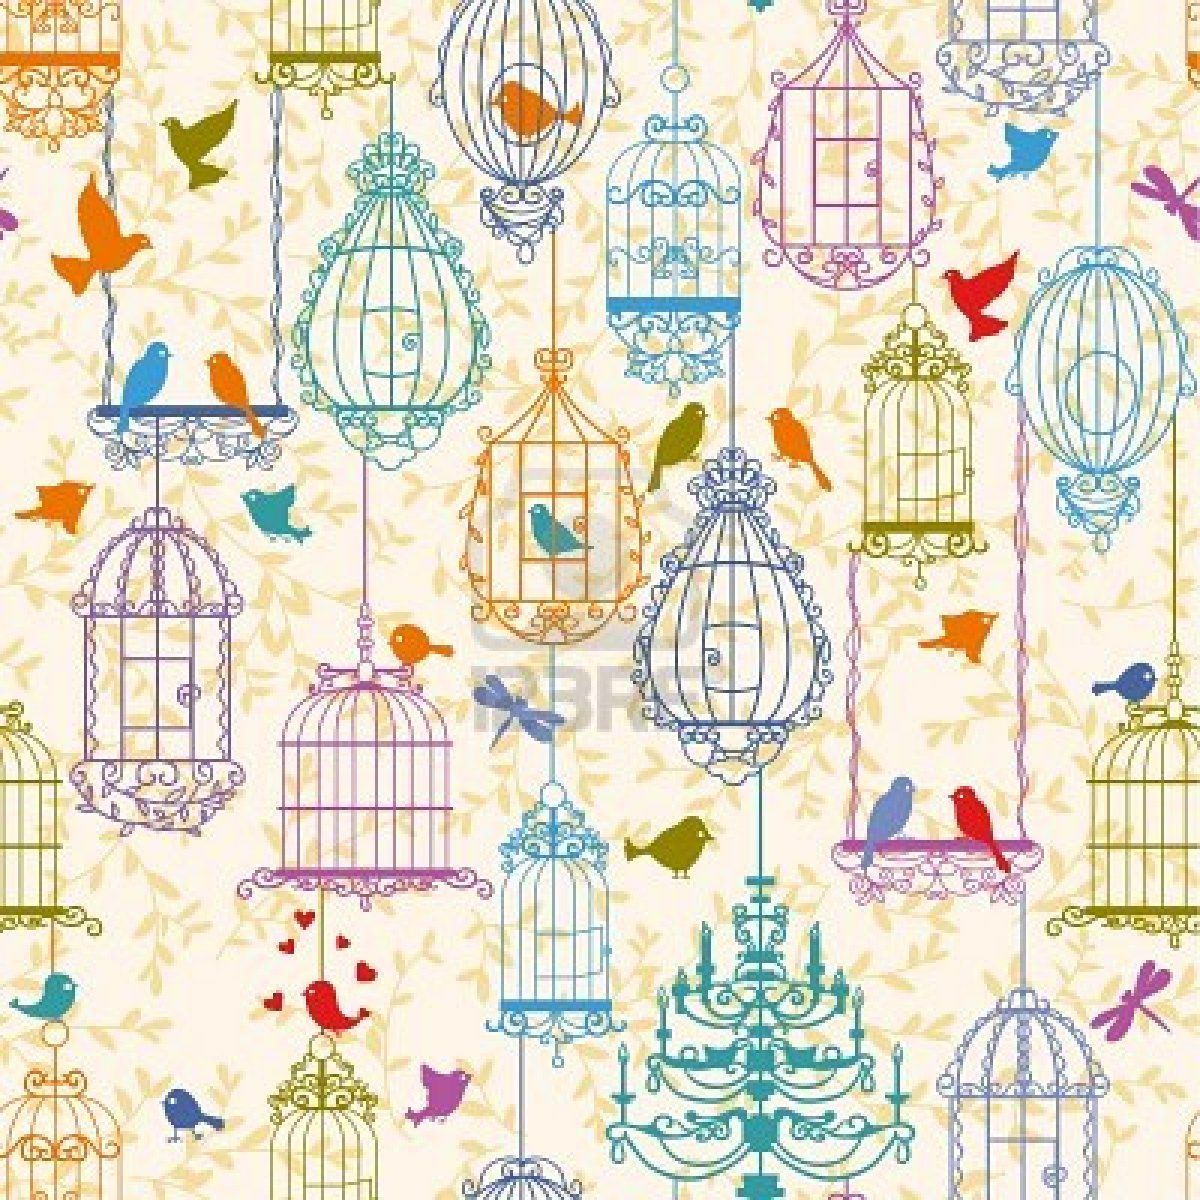 Vintage Dollhouse Wallpaper | Vintage Birdcage Wallpaper